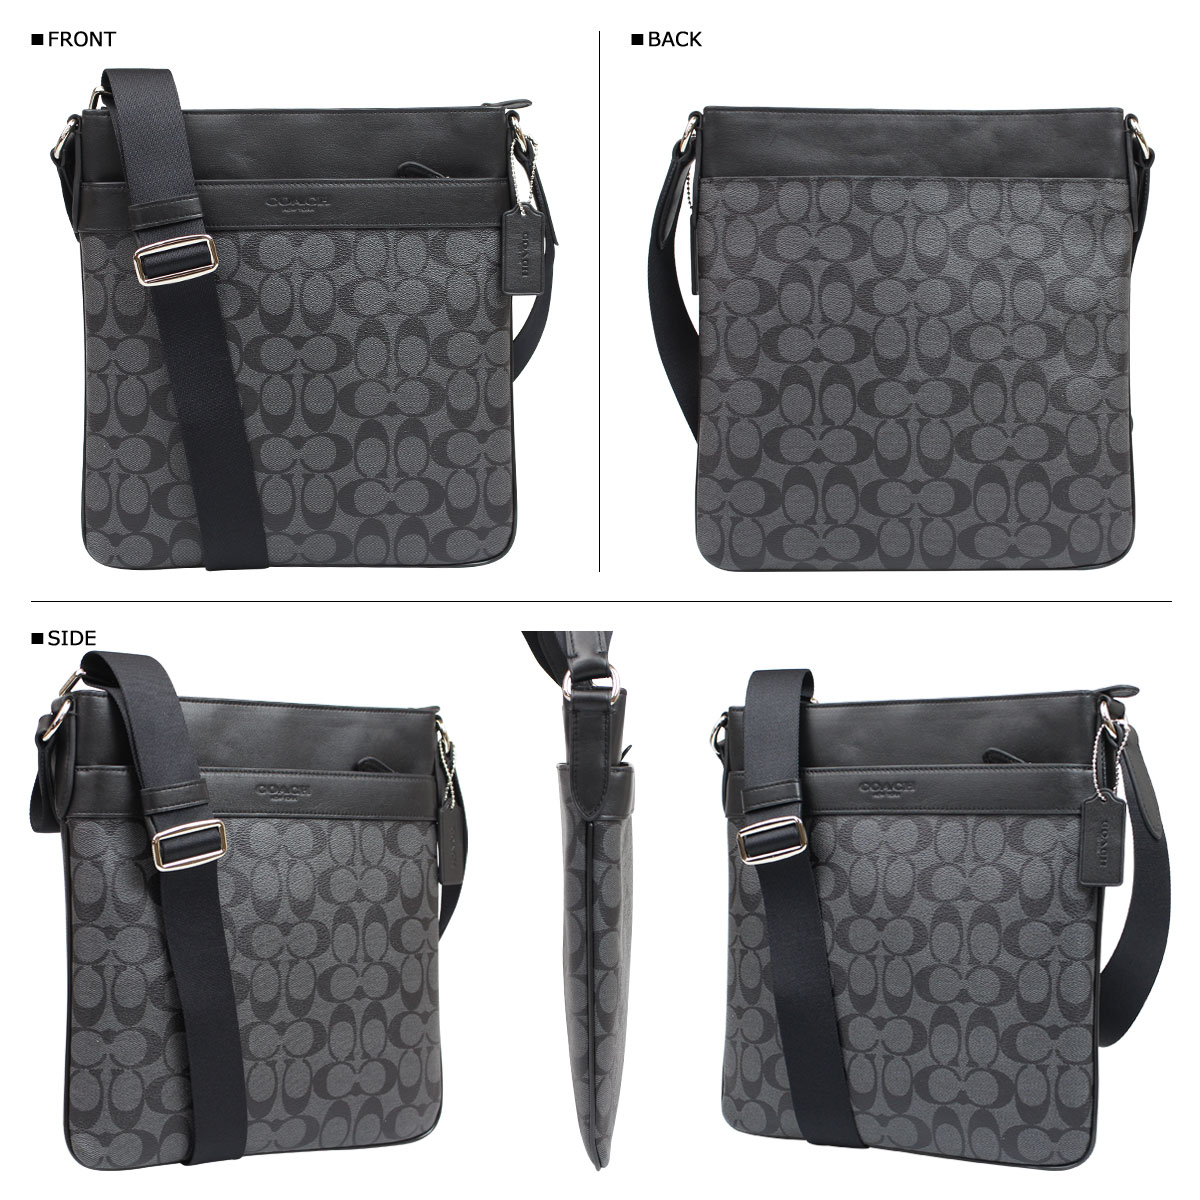 eb3f4b7c3 ... Coach COACH bag shoulder bags mens F71877 charcoal / black Bowery  signature cross body ...